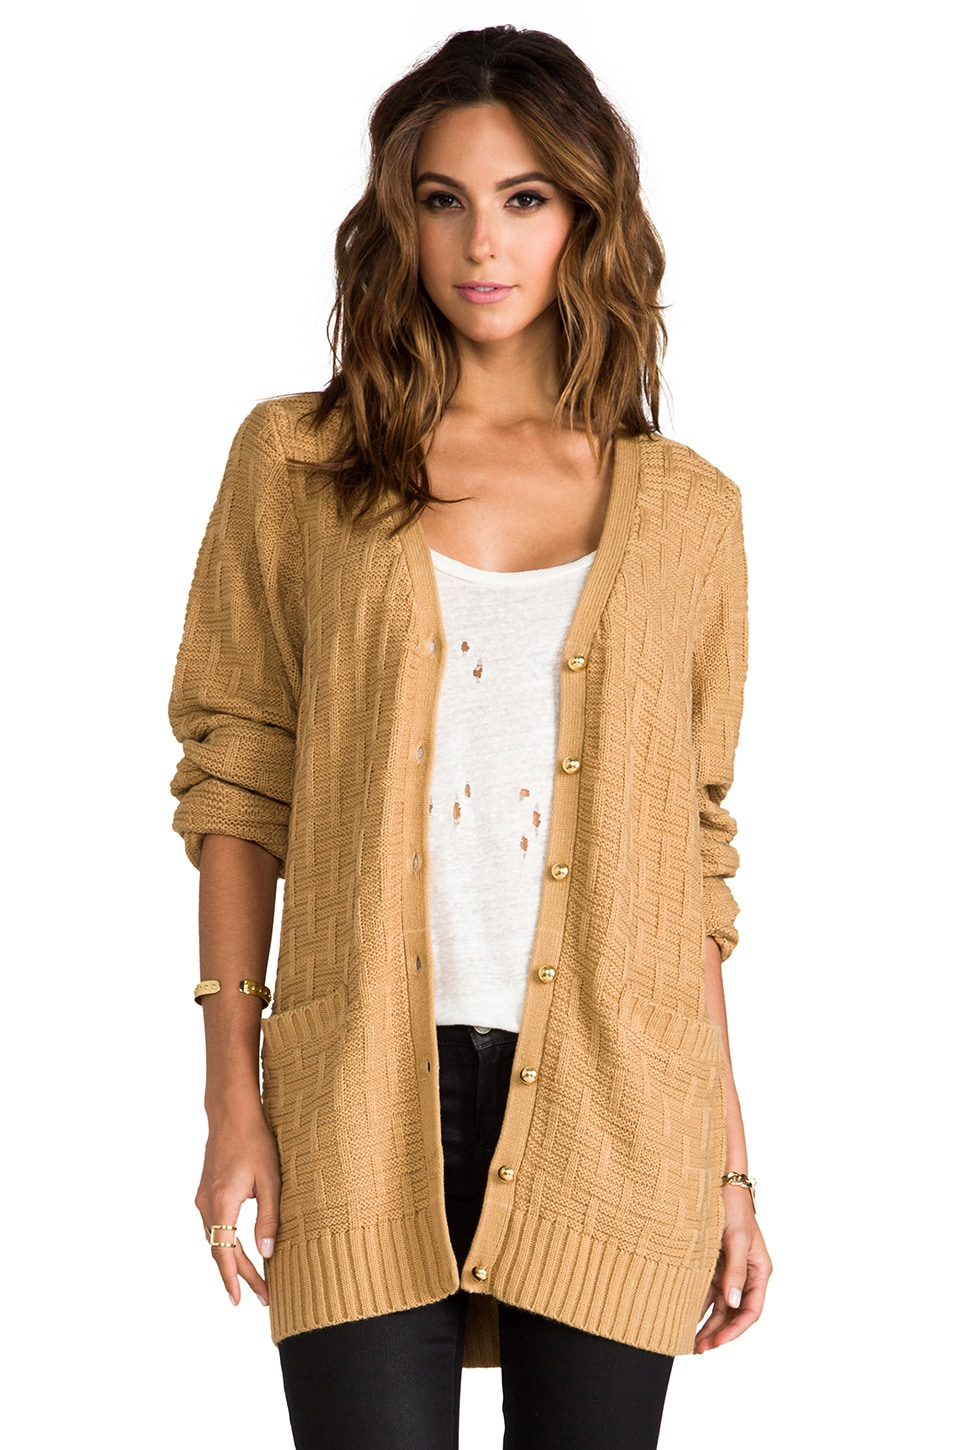 Lovers + Friends Be Better Cardigan in Rugby Tan